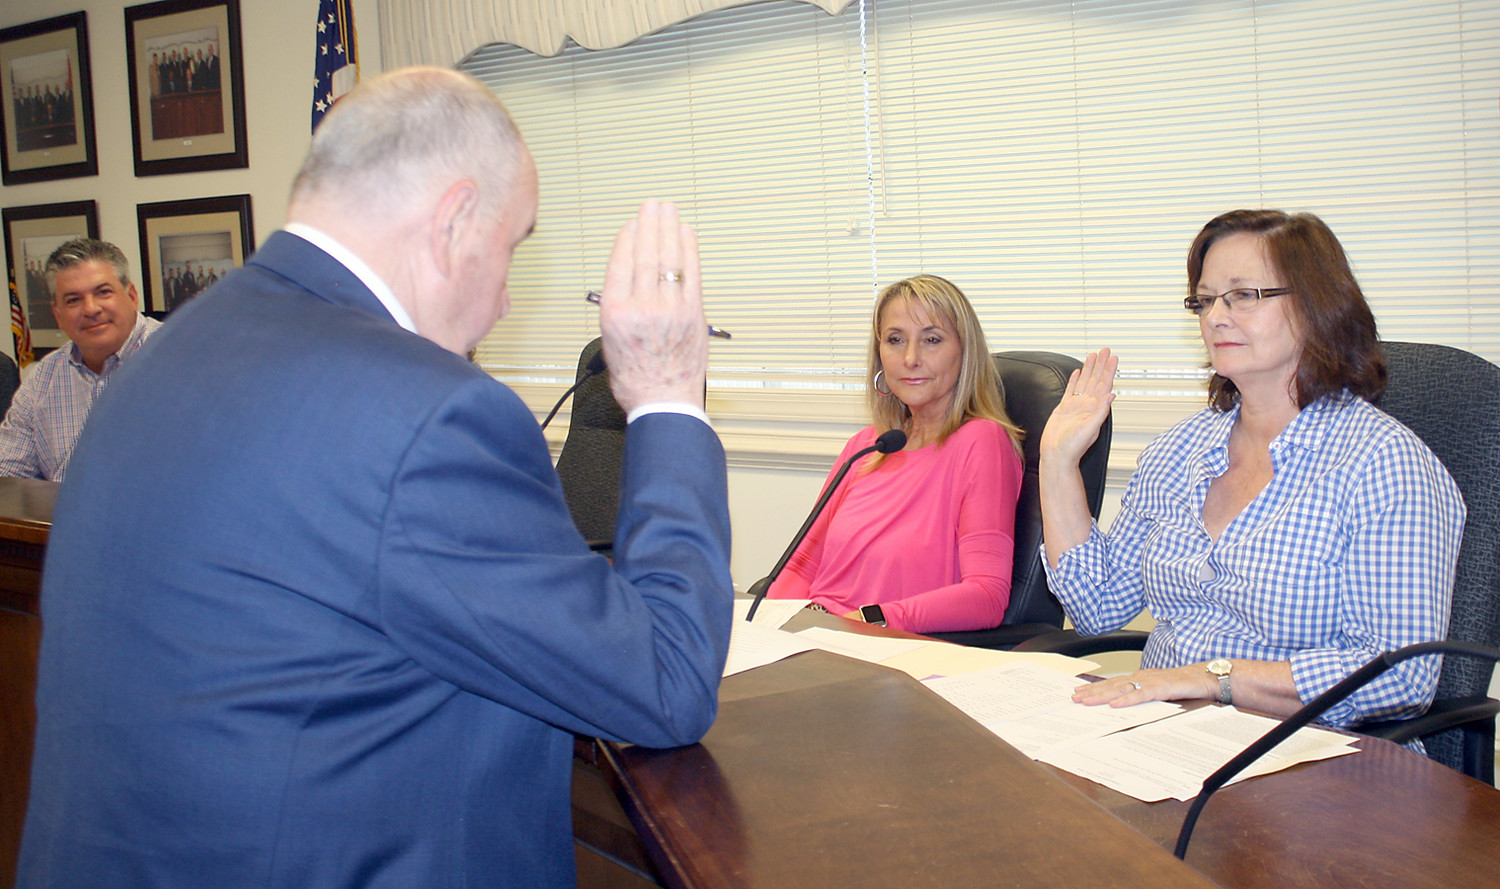 PAT OWNBY, right, a new member of the city's Animal Control Board, is administered her oath of office Thursday by Cleveland Mayor Tom Rowland. Other board members are Tom Cassada, left, and Rachel Veazey.